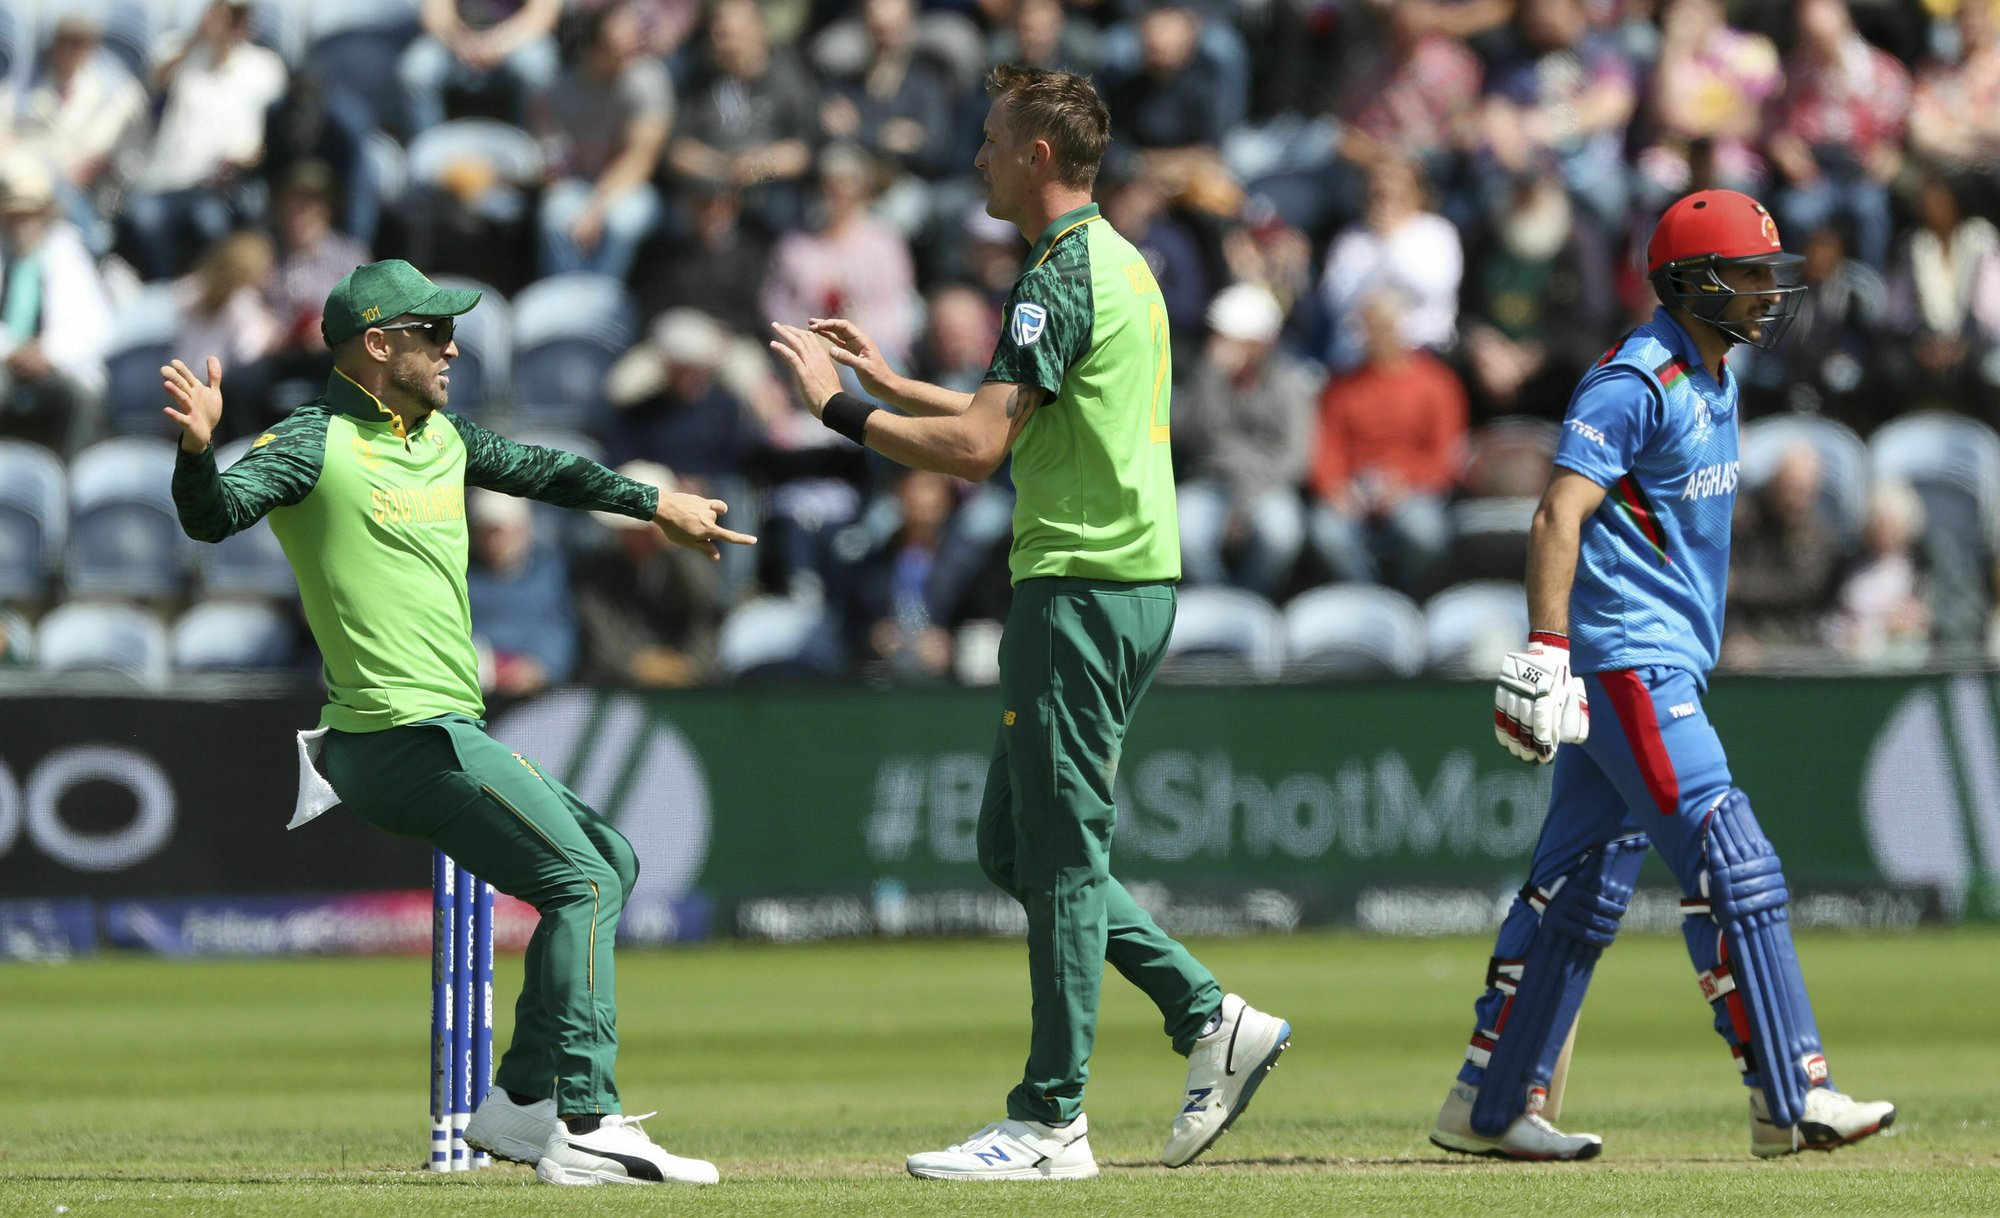 The Latest: South Africa beats Afghanistan by 9 wickets